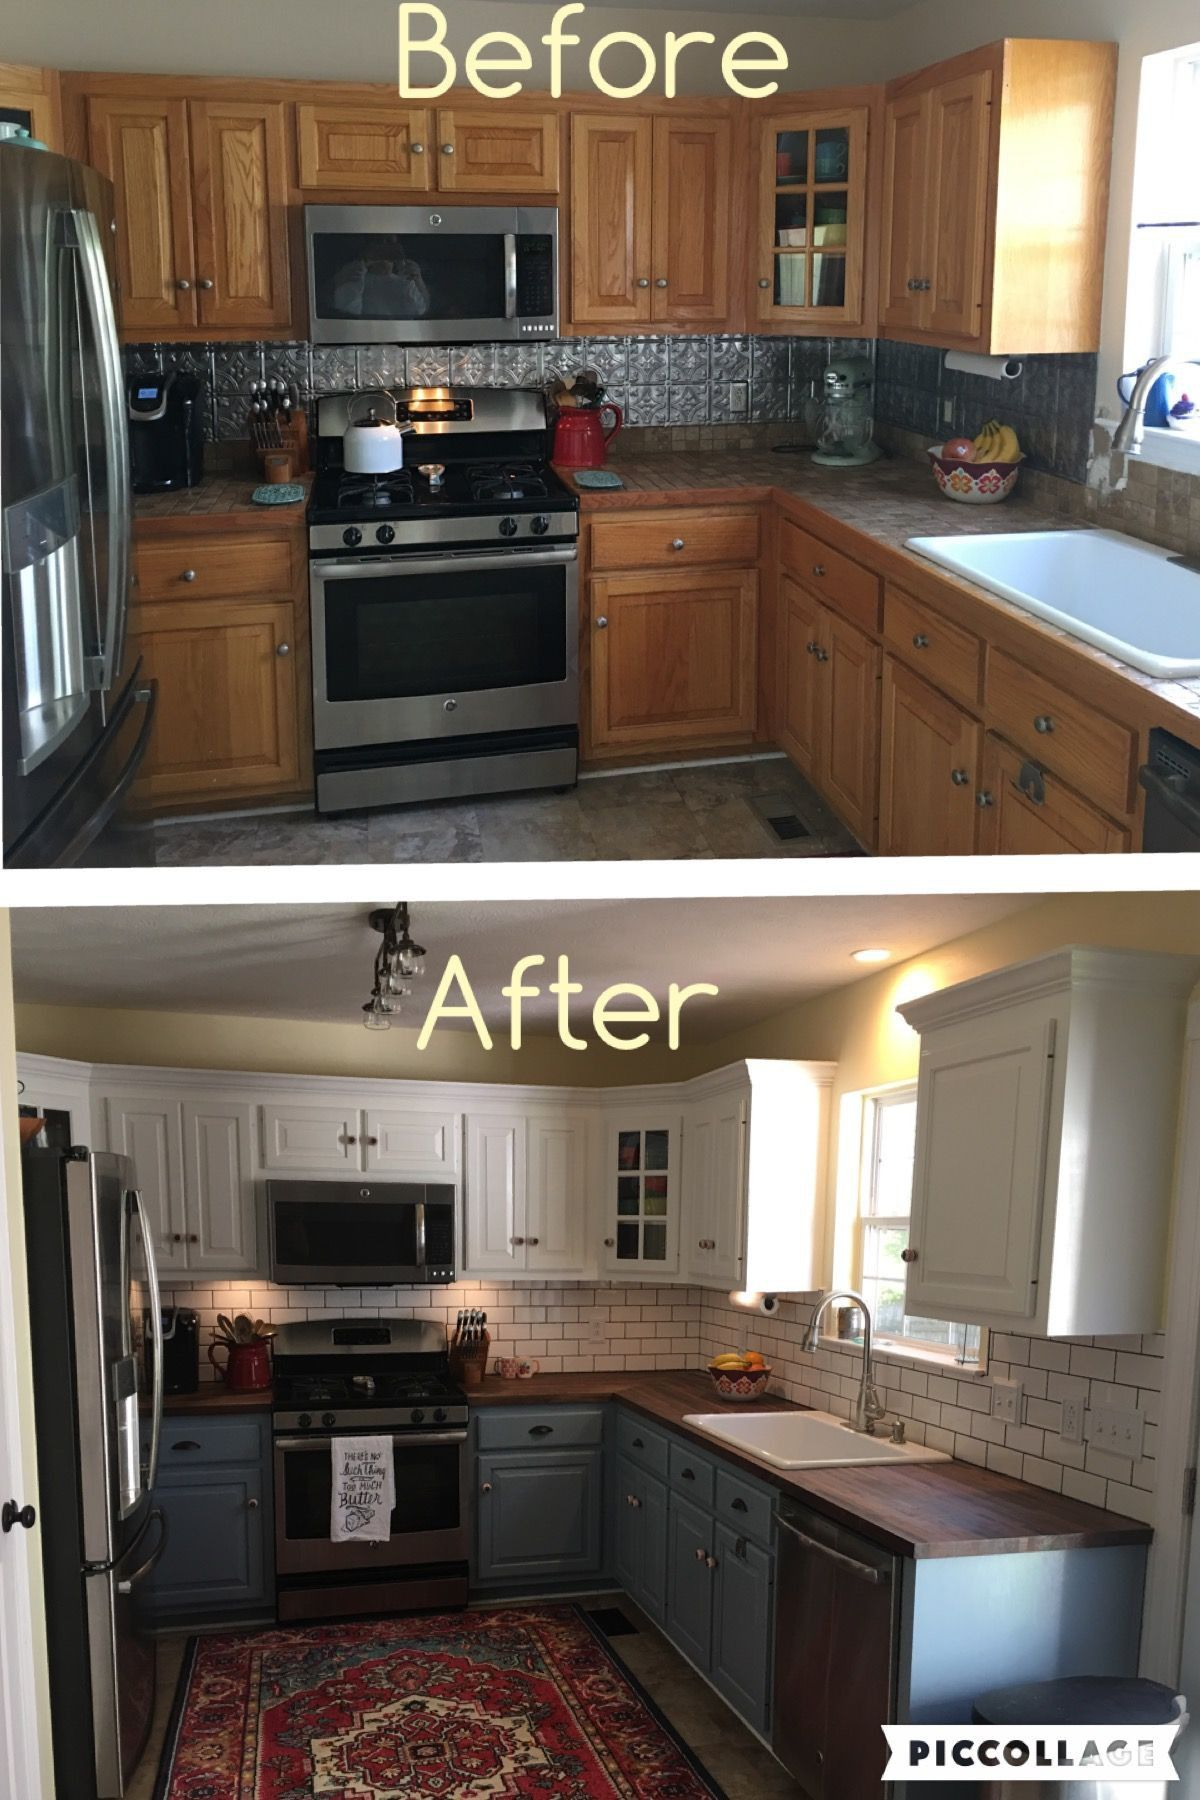 Luxury Lowes Kitchen Cabinets Installation Reviews The Most Elegant And Interesting Diy Renovation Makeover Cheap